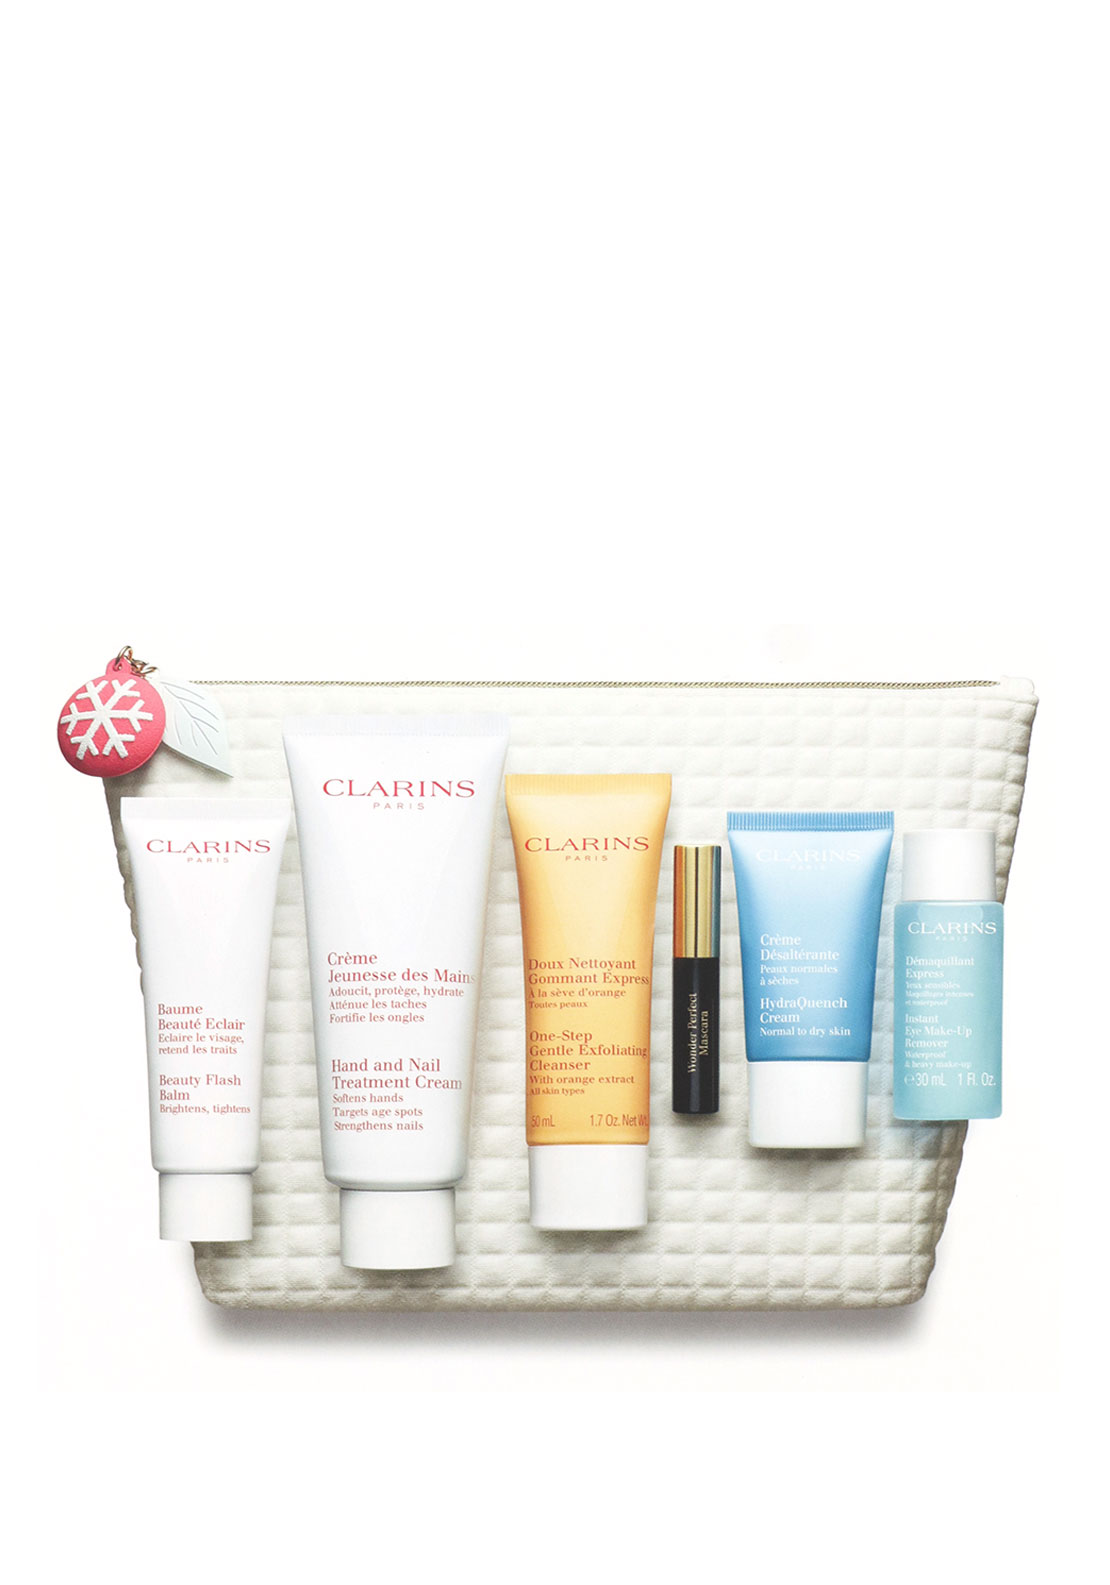 Clarins Christmas 'My Weekend Must-haves' Gift Set